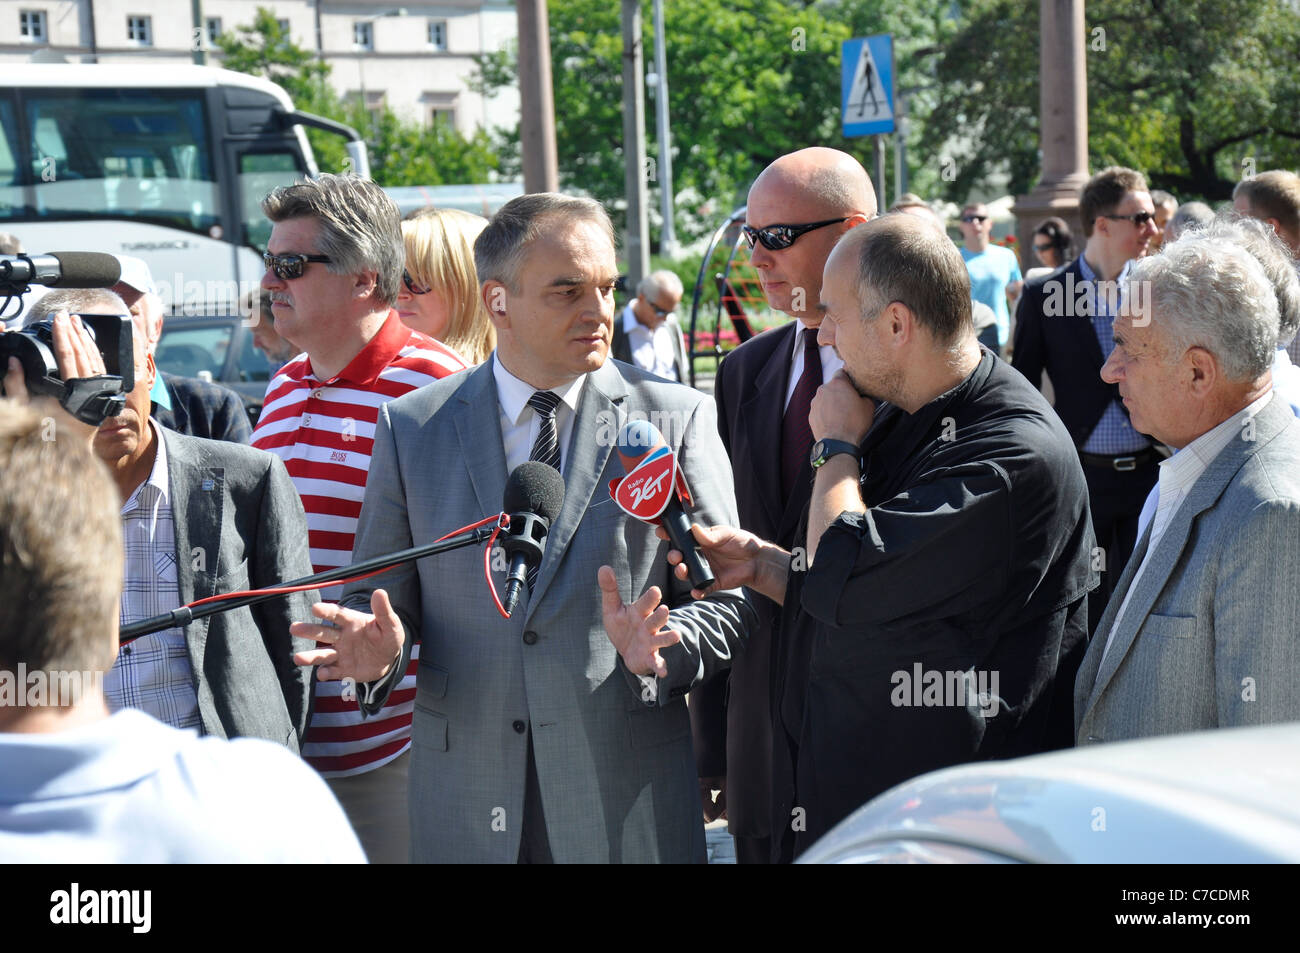 Electric cars (green eco vehicles) exhibit - Show, exhibition in Poland, Warsaw, 2011 - Waldemar Pawlak is interviewed - Stock Image